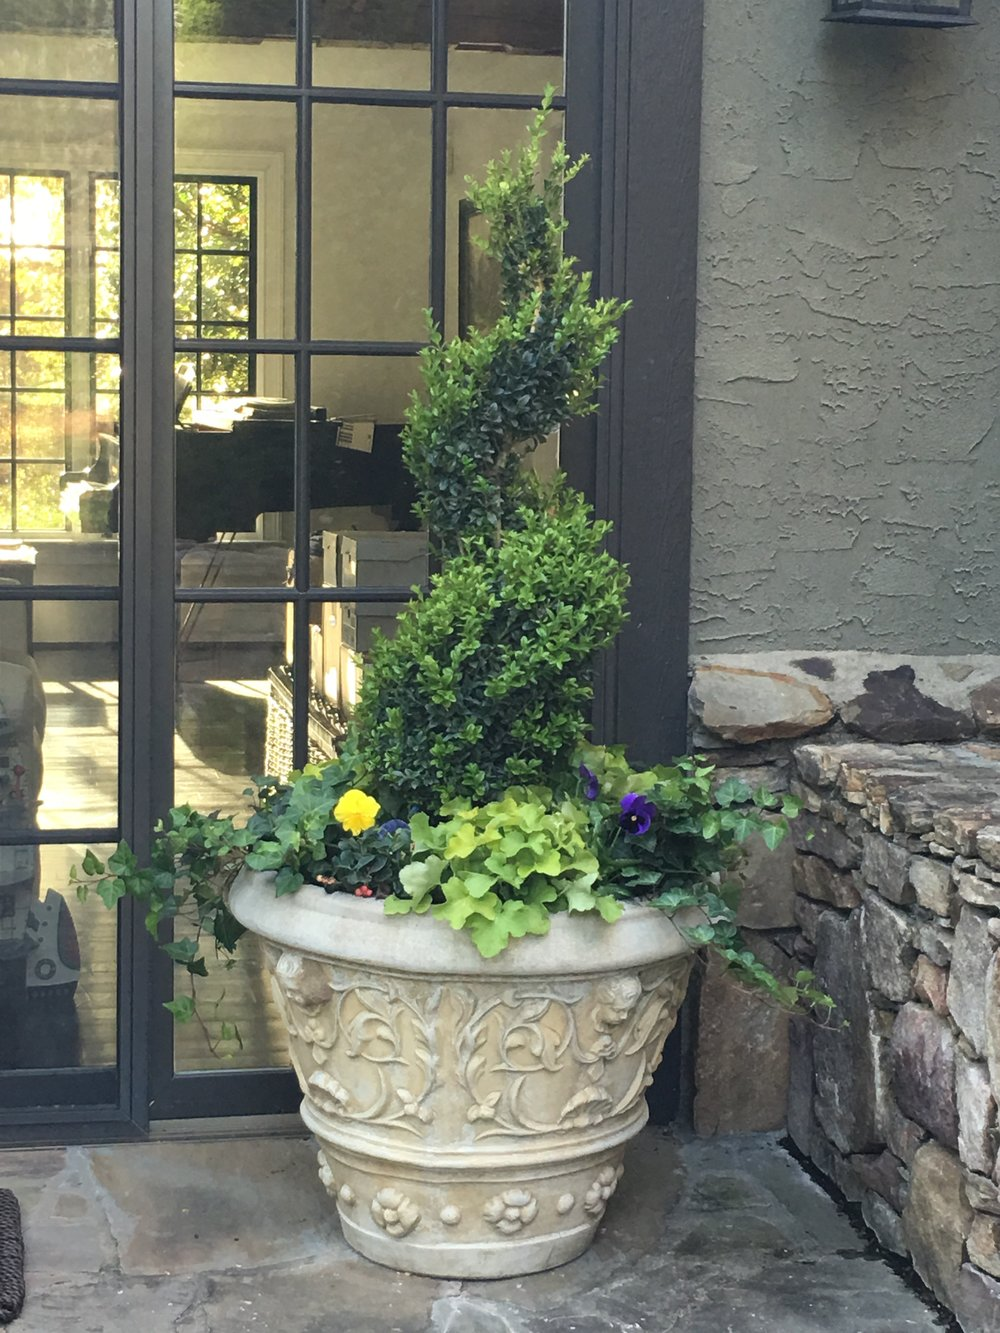 A winter garden in a concrete container. Concrete pots can stay out all winter, and look best if you plant them. In this pot are evergreen boxwoods, evergreen 'Cintronelle' heuchera and evergreen ivy. The pansies will die back but show again in spring.